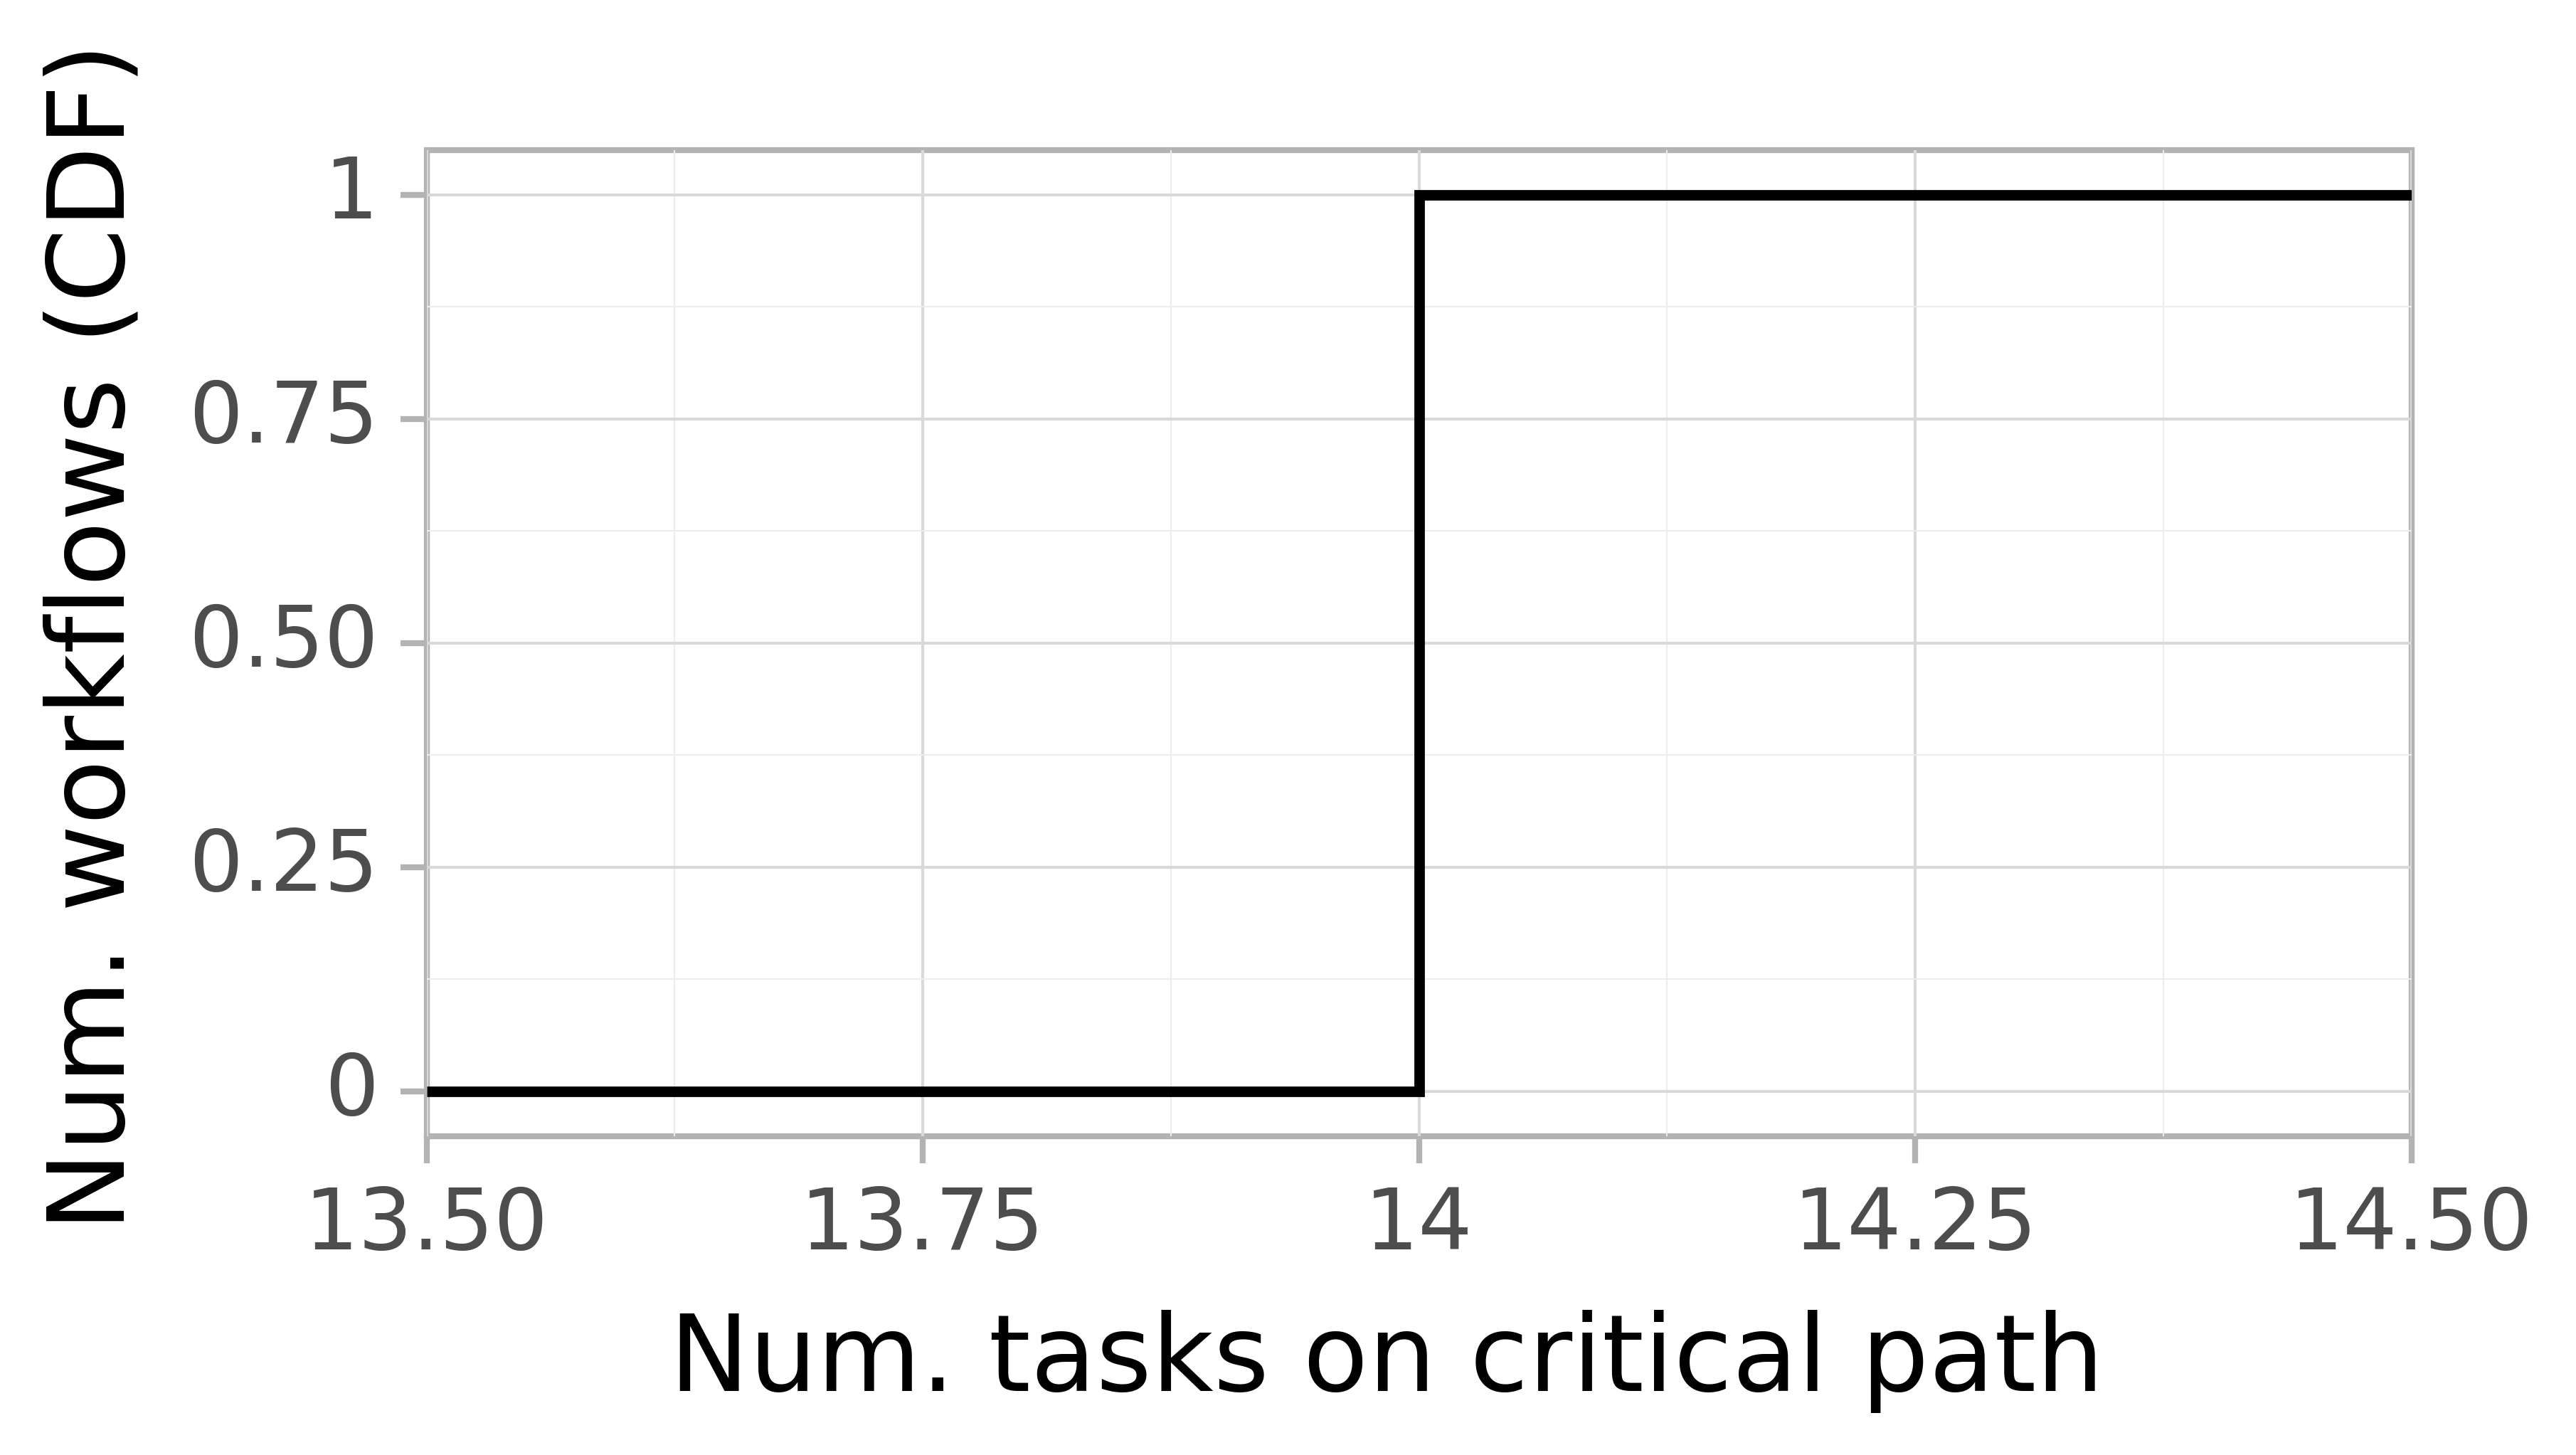 Job critical path task count graph for the workflowhub_epigenomics_dataset-hep_grid5000_schema-0-2_epigenomics-hep-g5k-run001 trace.